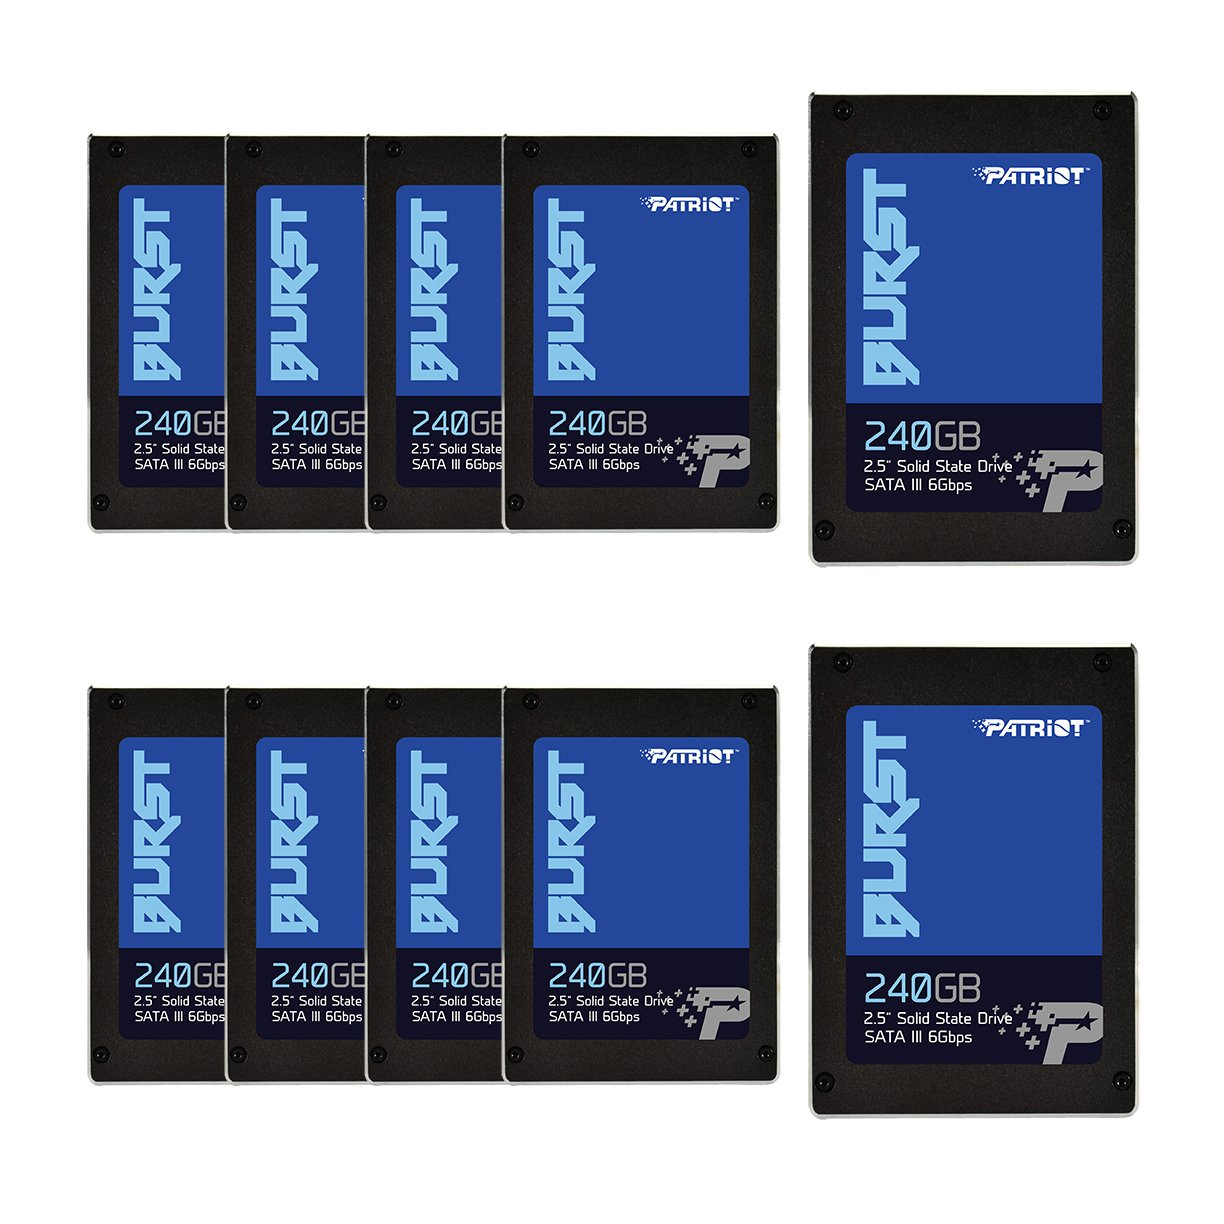 Patriot Memory Burst SSD 240GB SATA III Internal Solid State Drive 2.5'' - Retail Package 10 Unit Pack